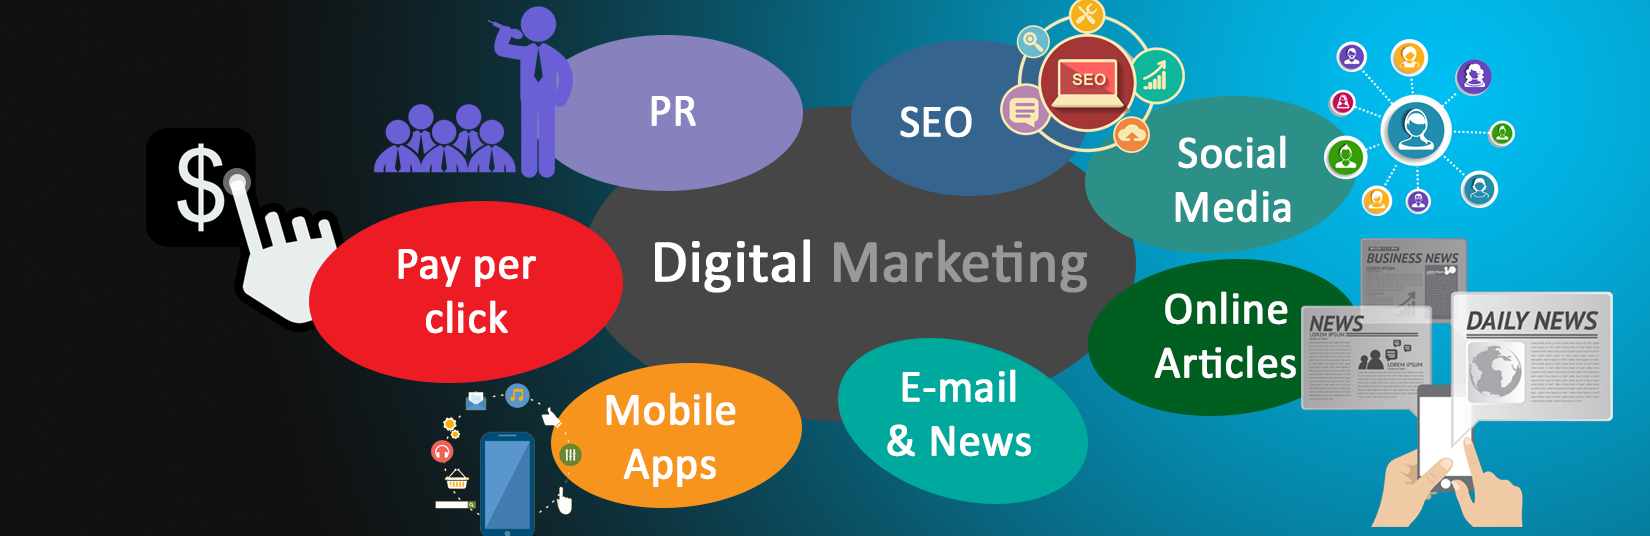 digital marketing image2